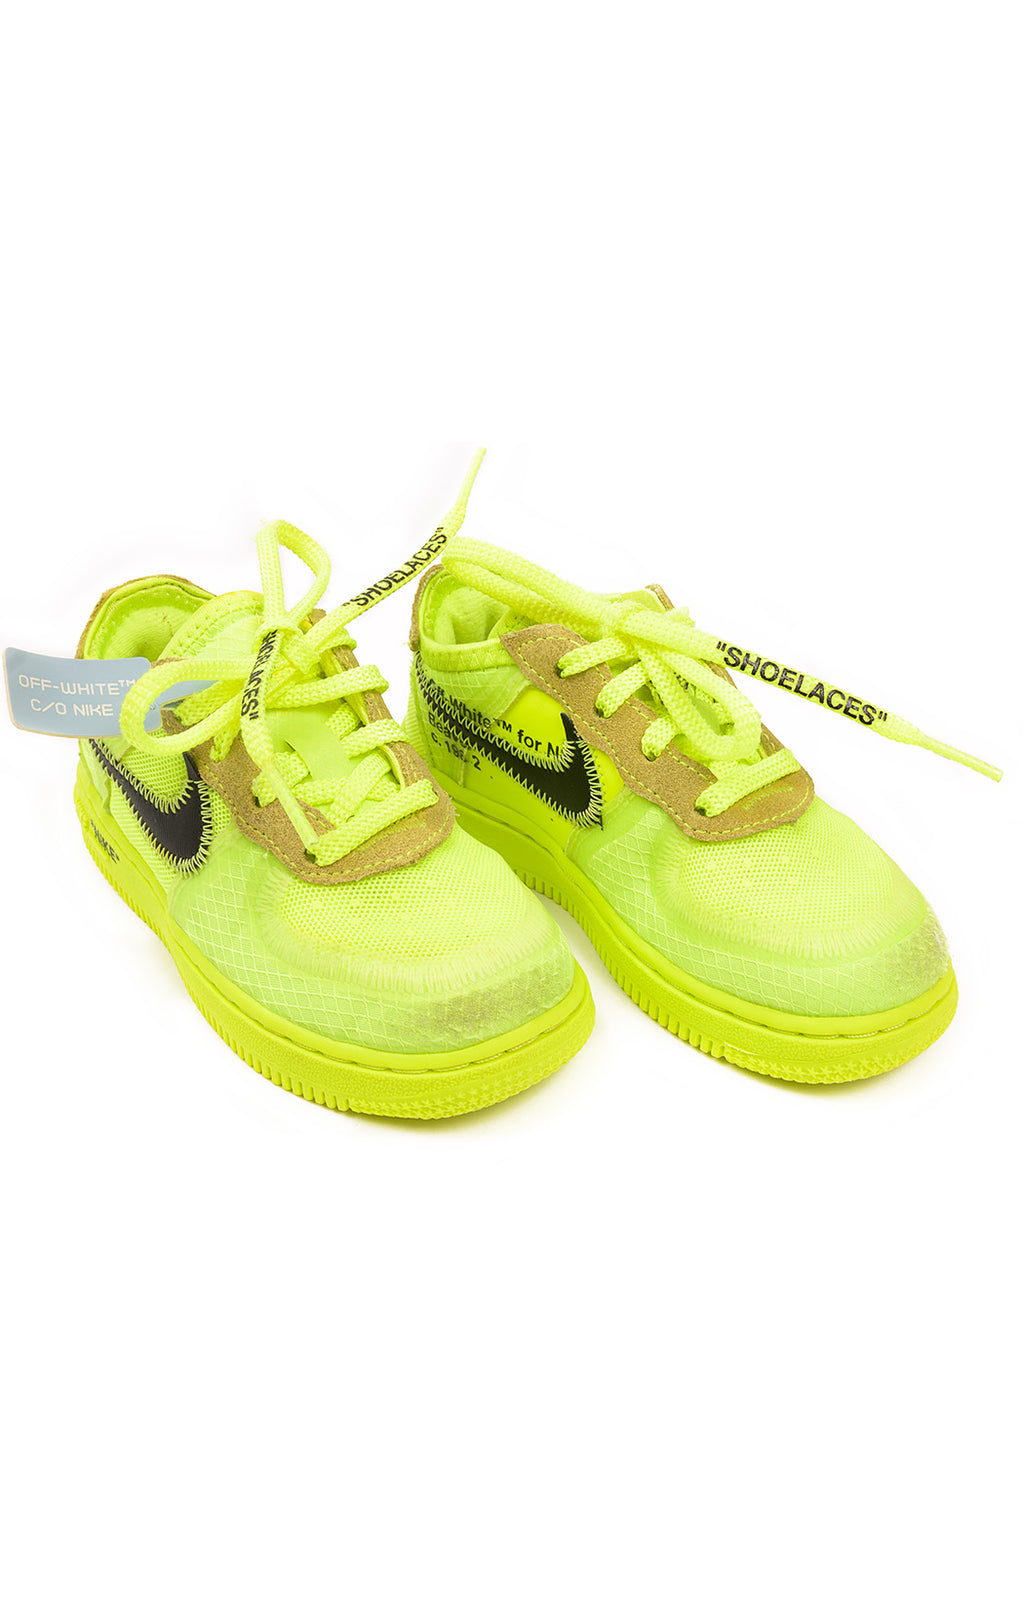 Front view of OFF WHITE C/O NIKE Tennis shoes Size: 9C toddler